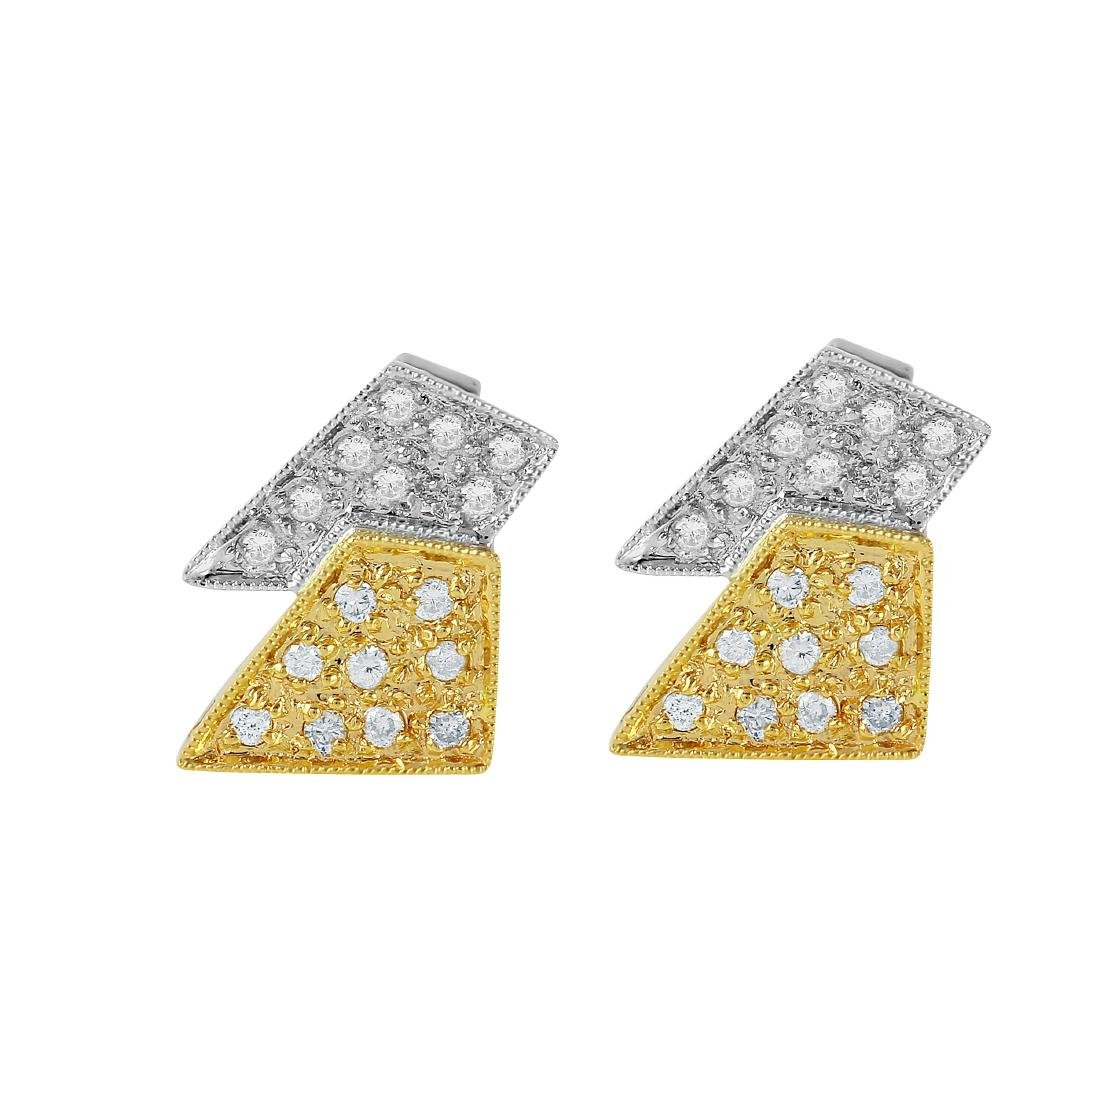 14KT Two Tone Gold Diamond Stud Earrings - 2